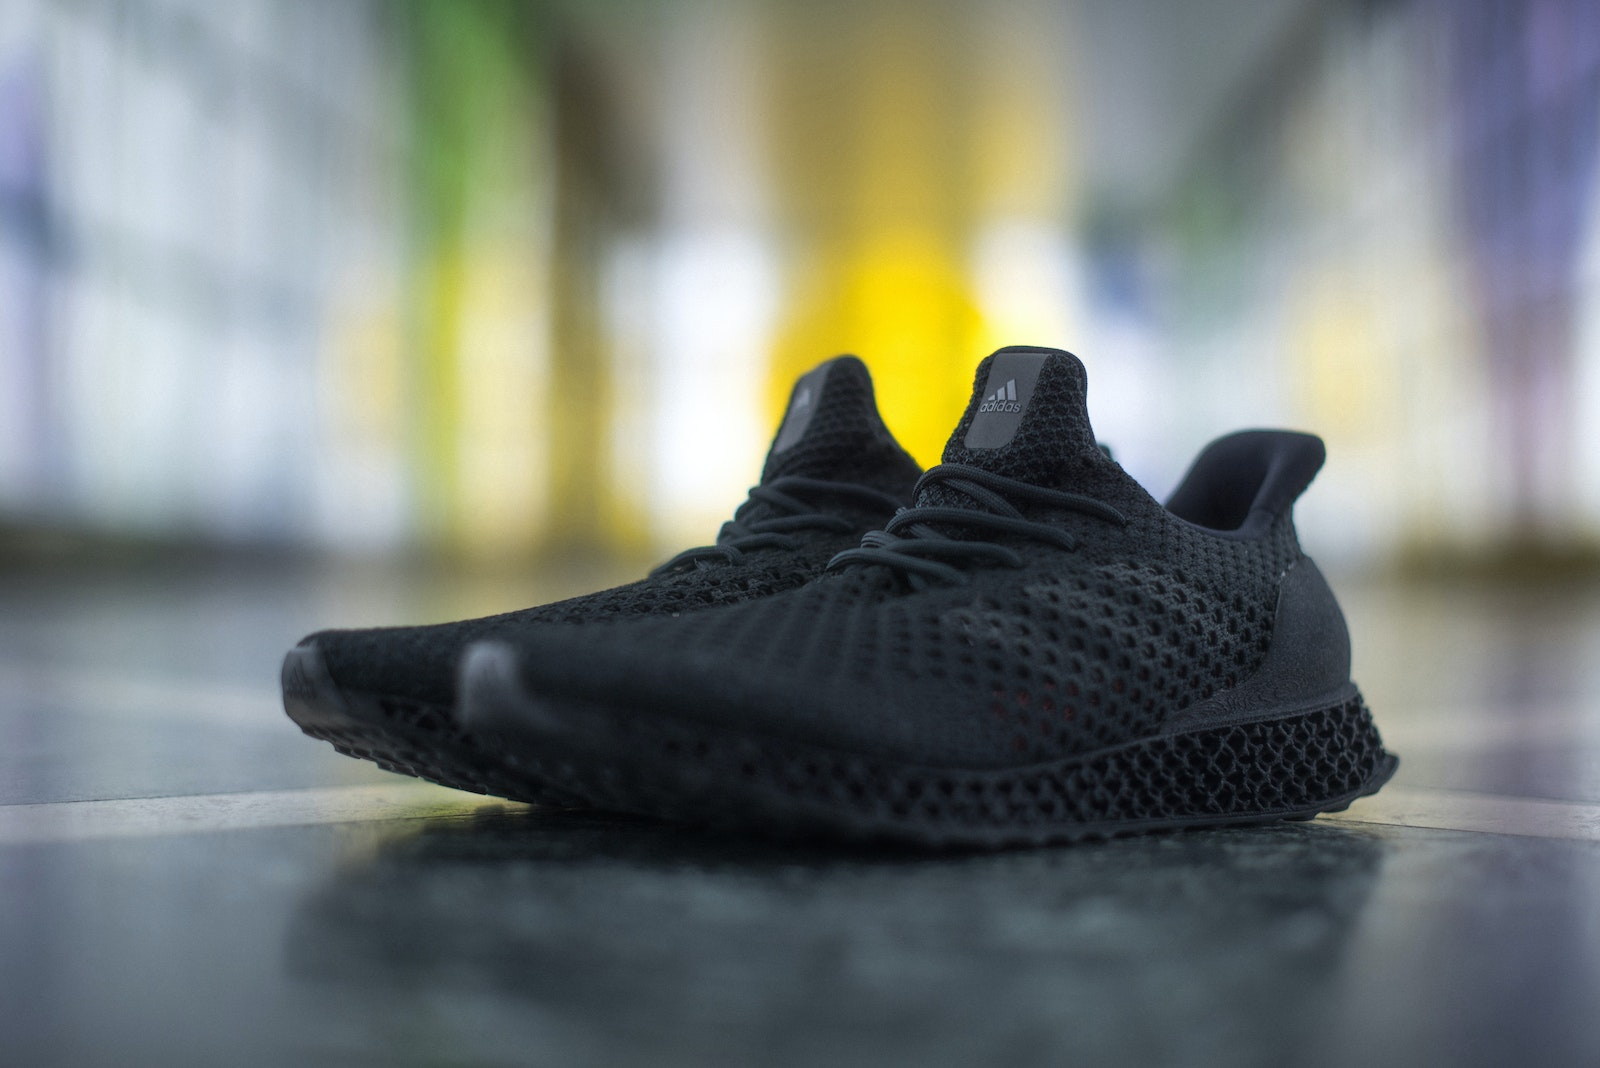 san francisco f241e f8ce0 adidas has announced that it will be making its 3D technology shoes  available to purchase for the first time with a limited edition release.